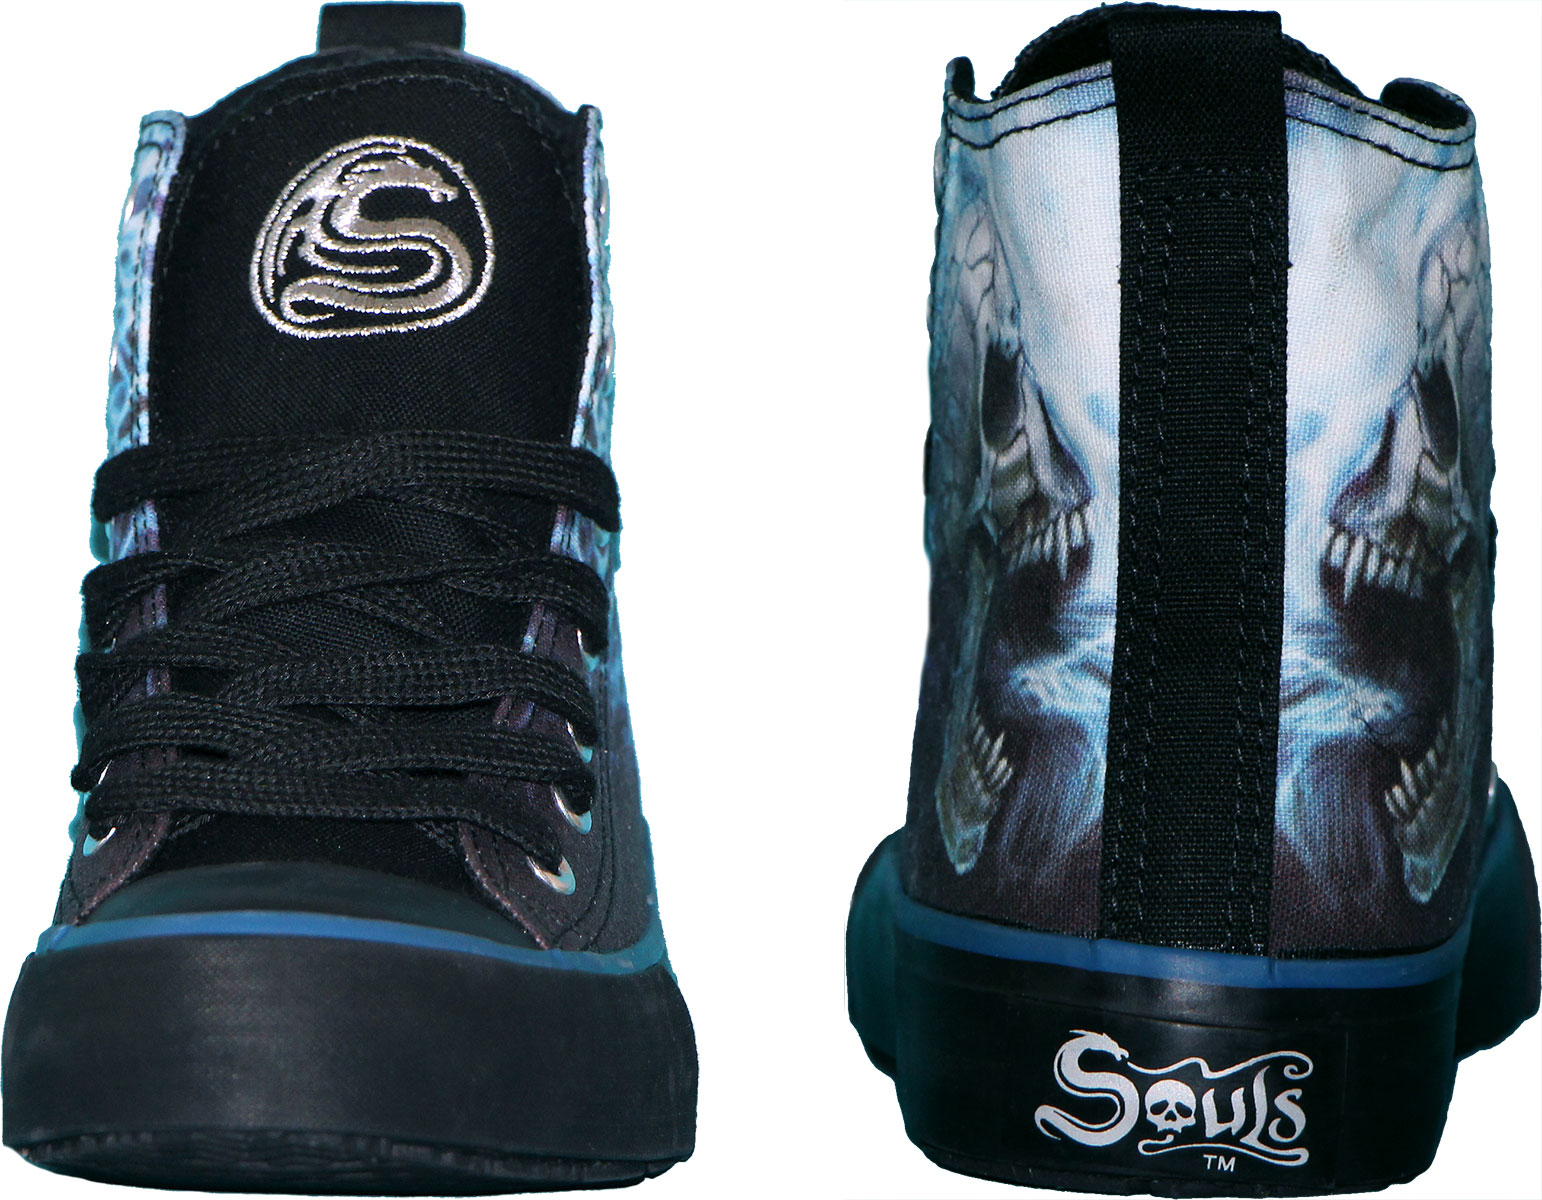 Spiral Flaming Spine Men/'S High Top Laceup|Skeleton|Flames|Tribal Sneakers